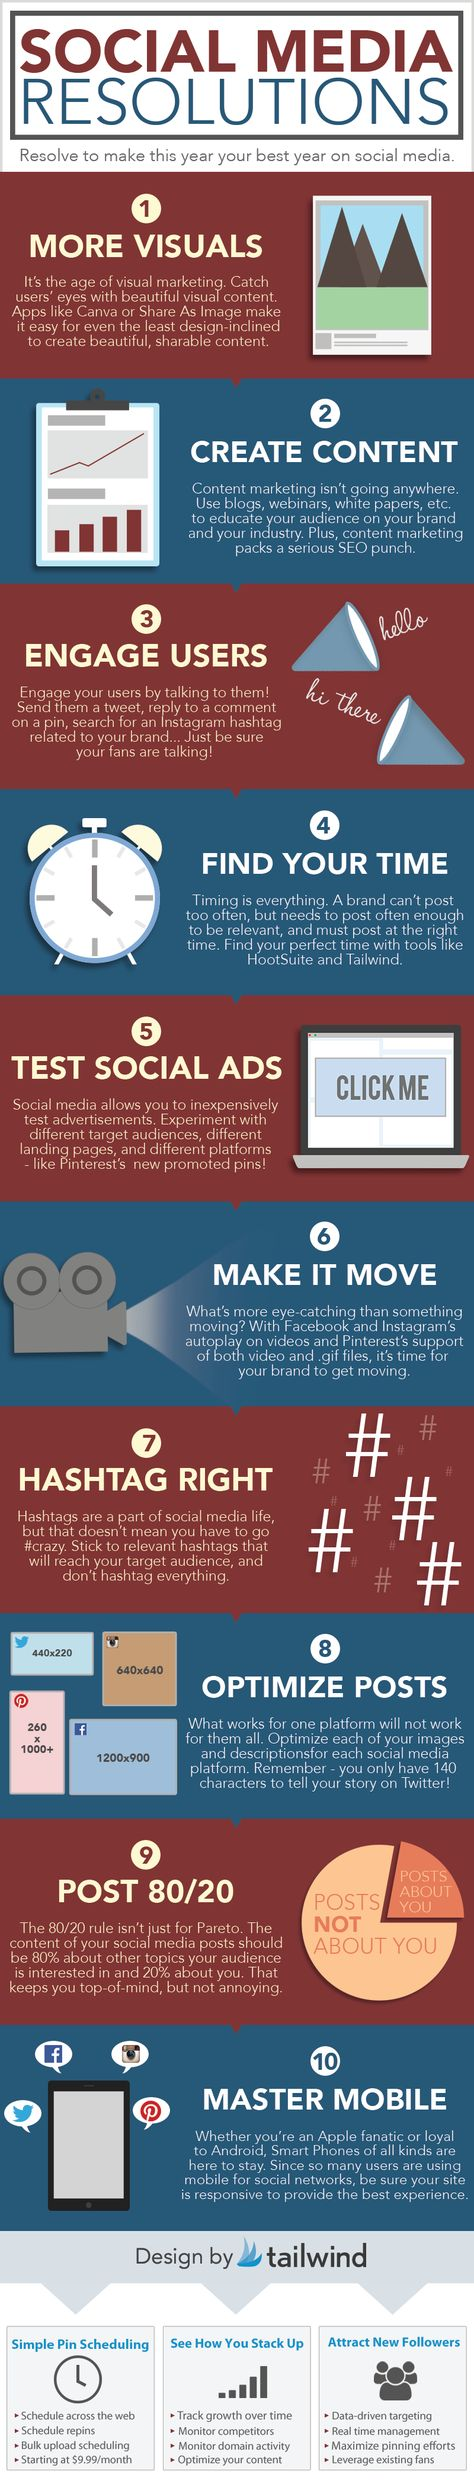 10 Social Media Resolutions for 2015 [INFOGRAPHIC]